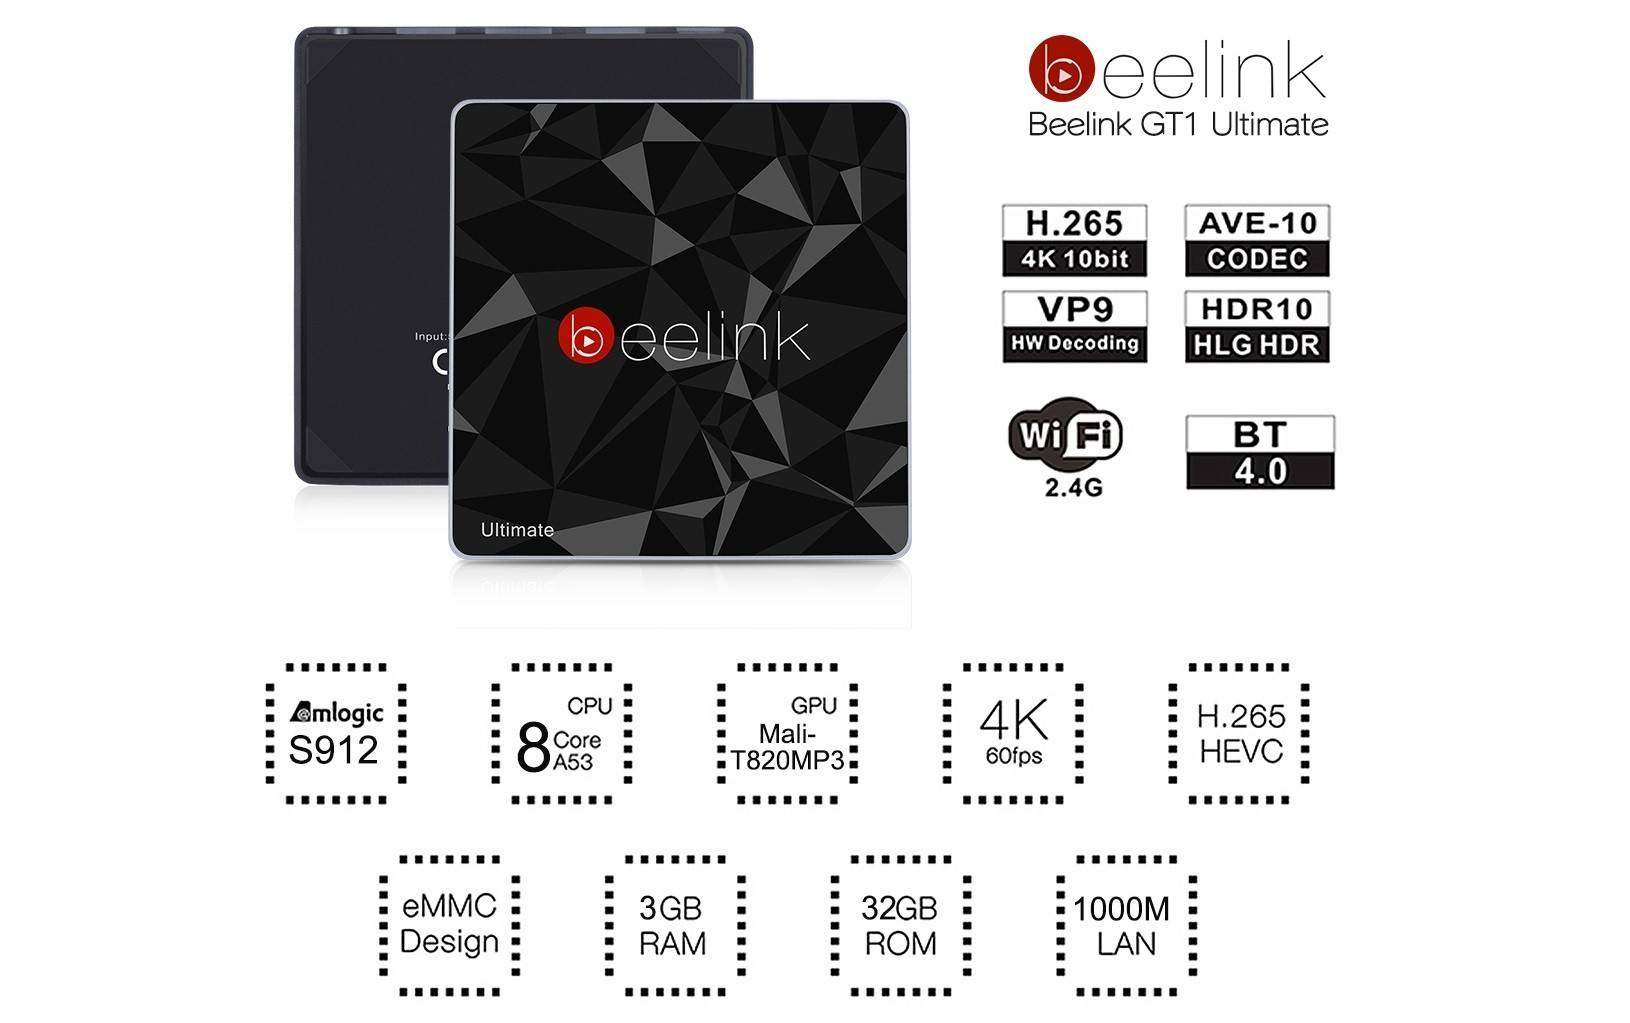 beelink gt1 ultimative